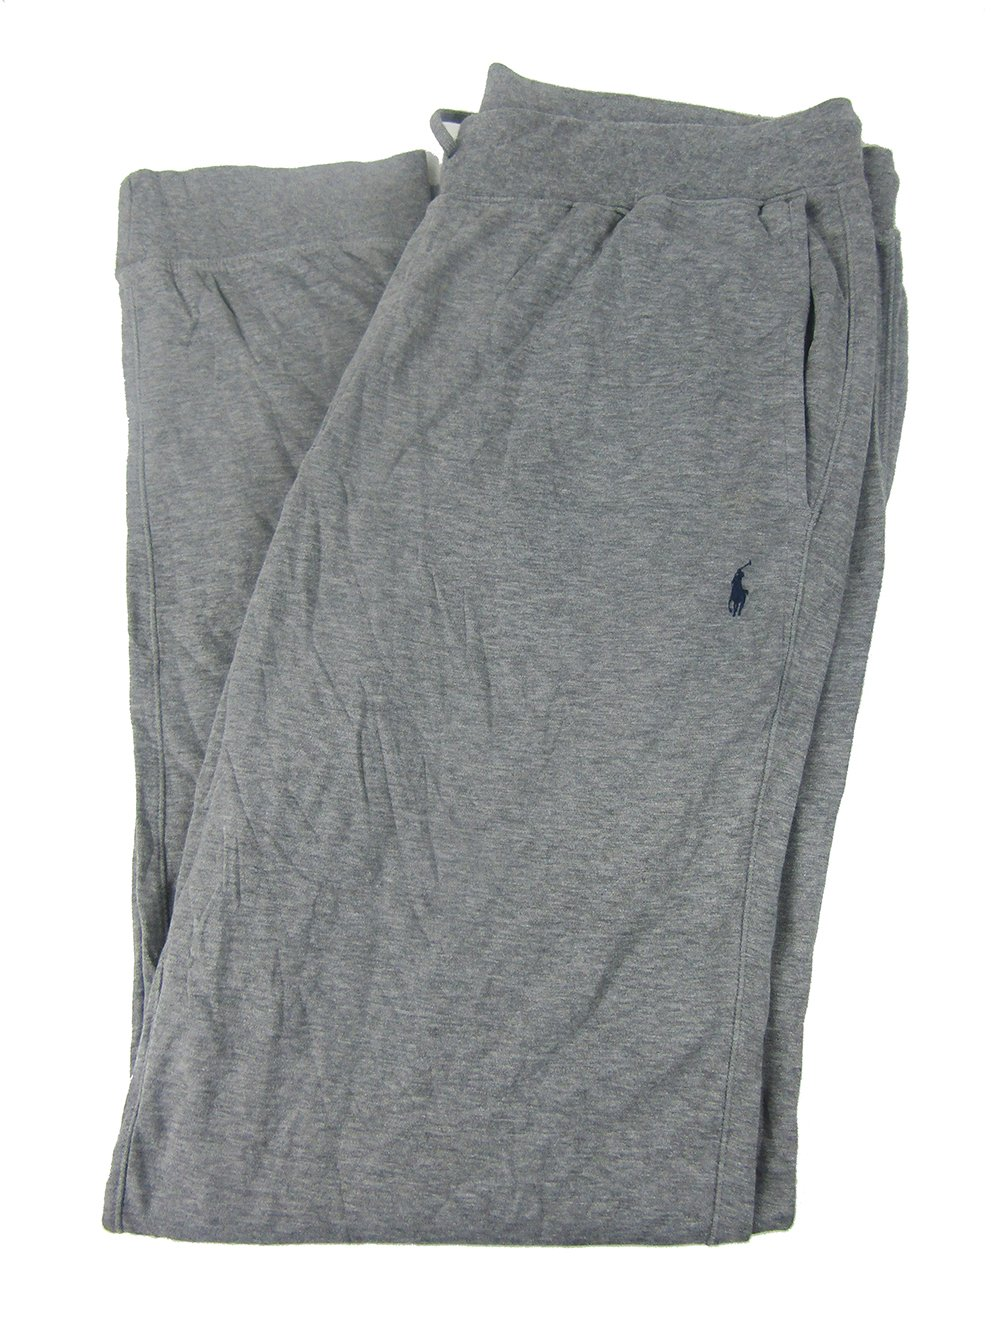 Polo Ralph Lauren Men's Big & Tall Jersey Jogger Pants (2XB, Winter Grey) by Polo Ralph Lauren (Image #1)